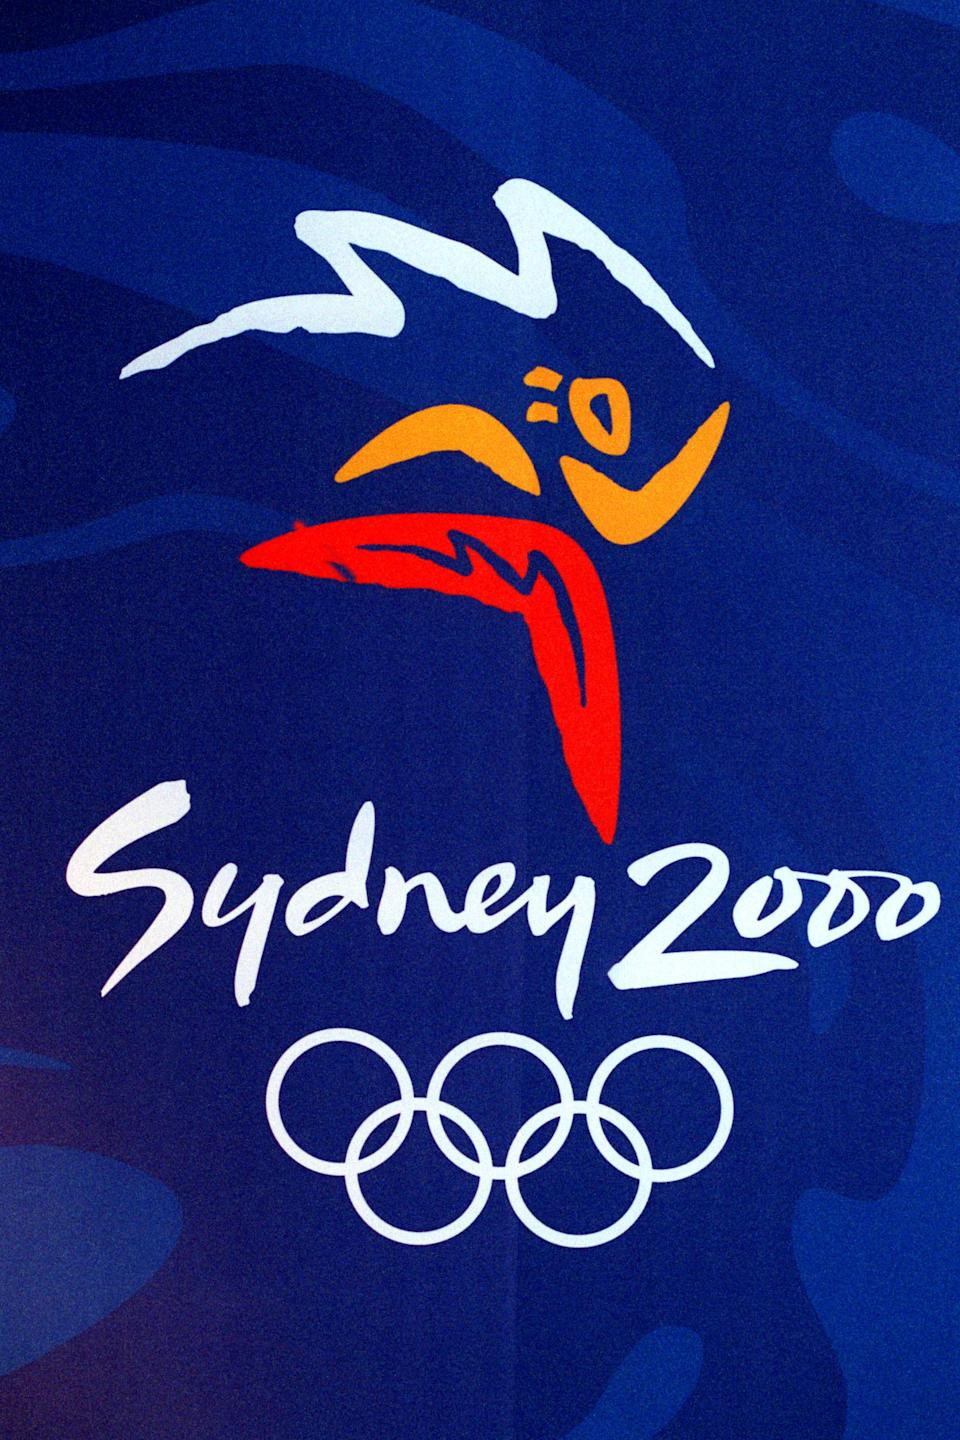 The official Olympic logo  (Photo by Tony Marshall/EMPICS via Getty Images)